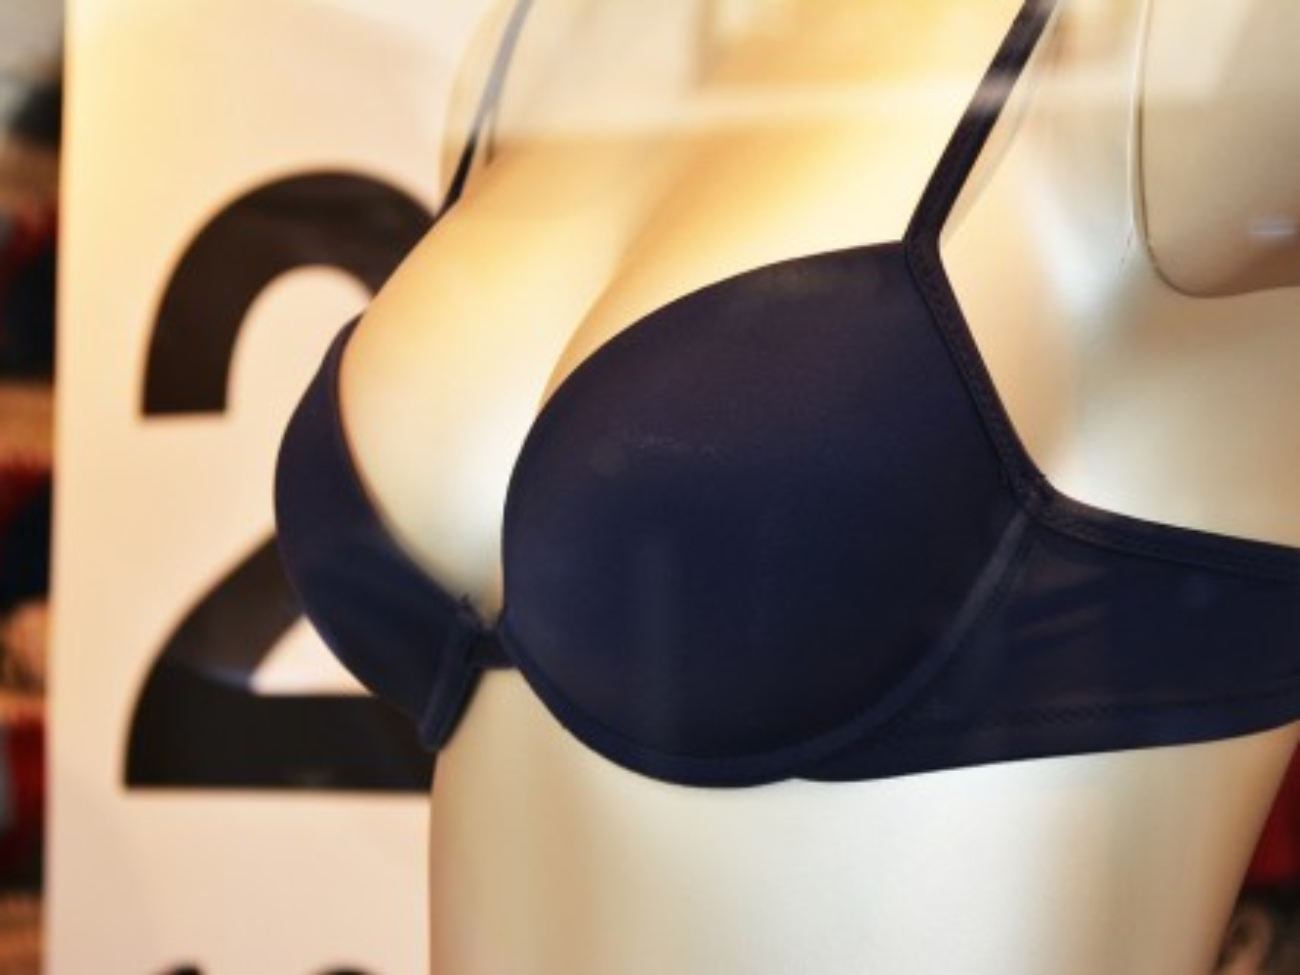 All-You-Need-To-Know-About-34B-Breast-Size